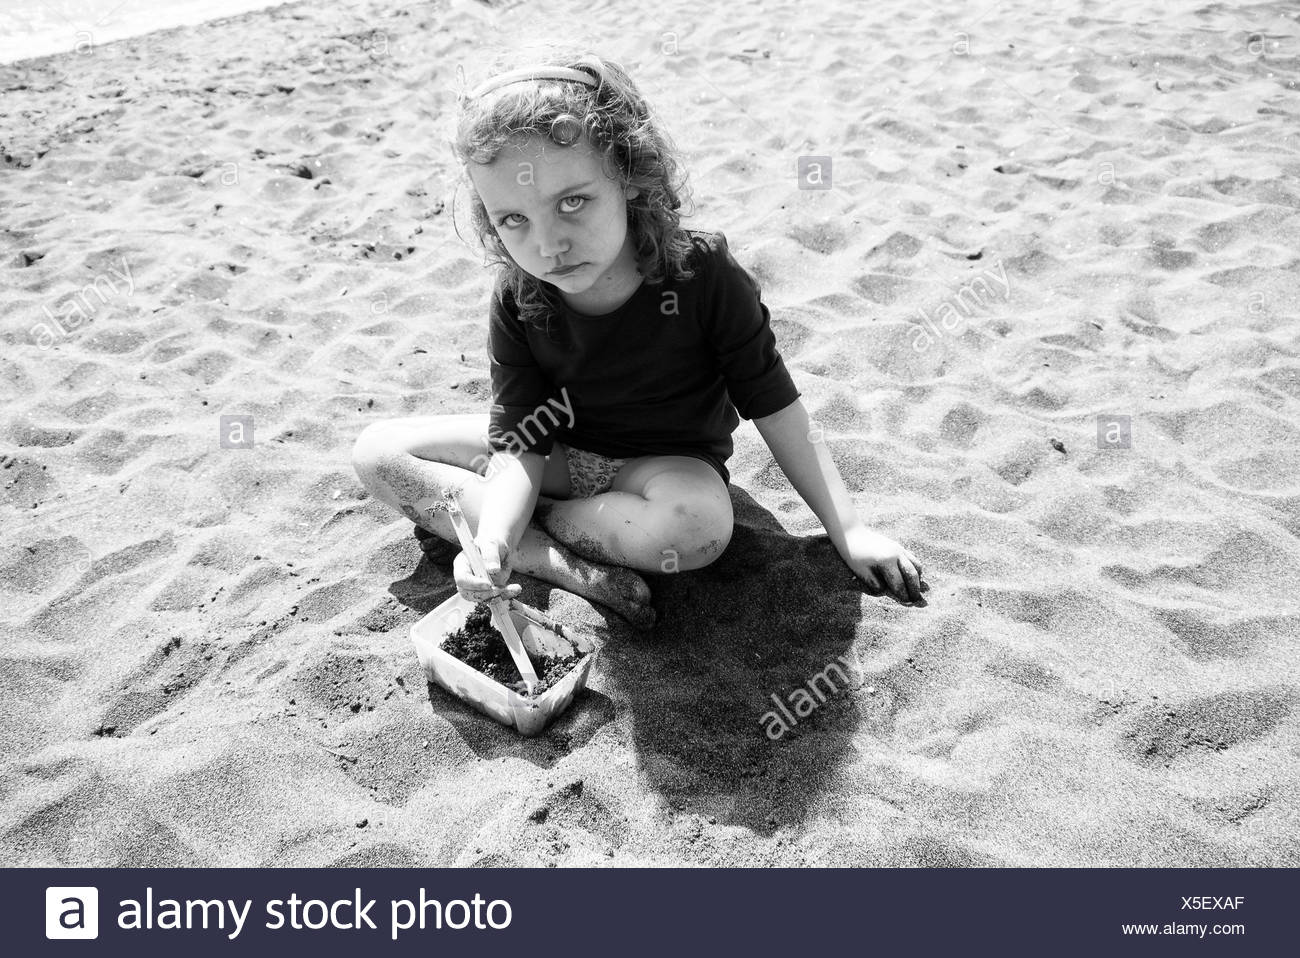 Sad looking girl sitting on the beach, Italy - Stock Image